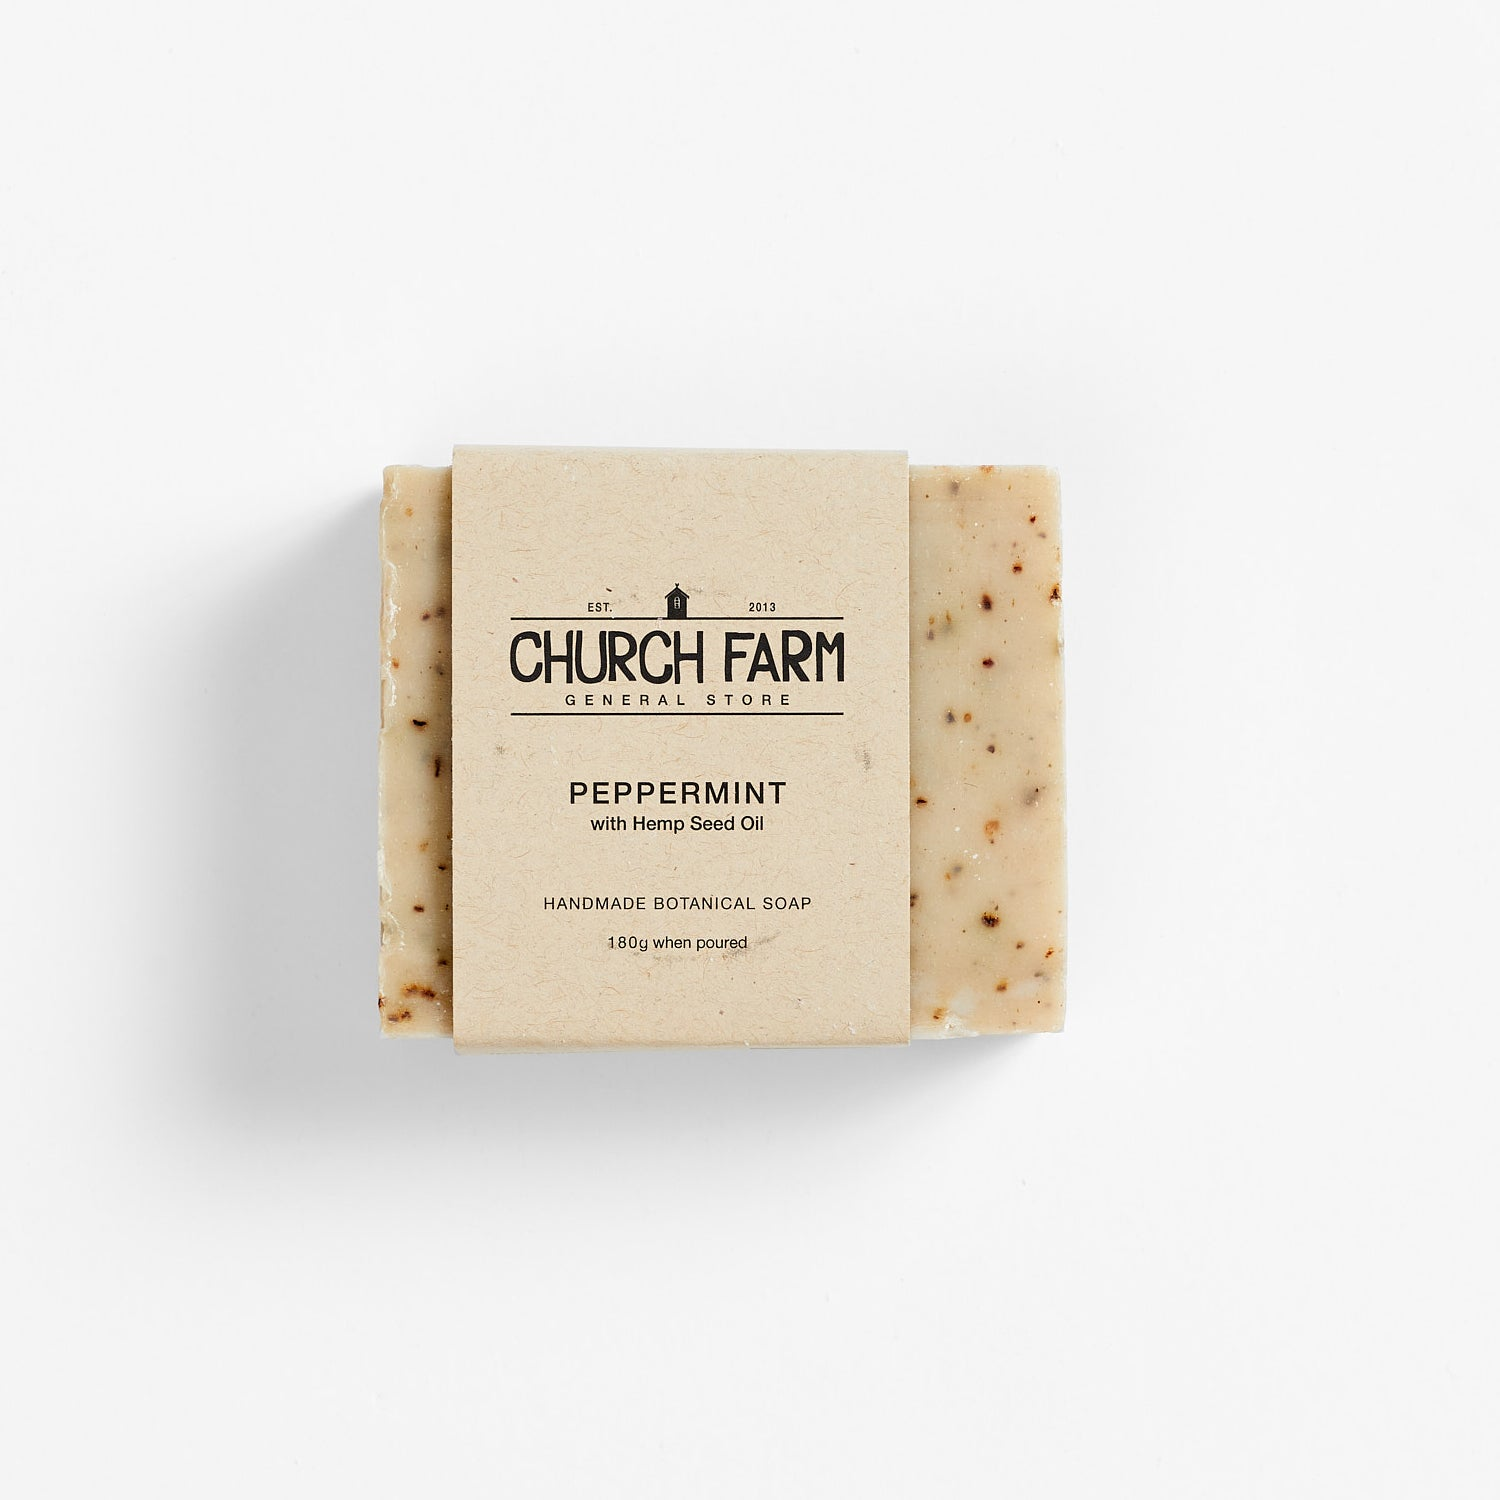 Church Farm Botanical Soap - Peppermint & Hemp Seed Oil